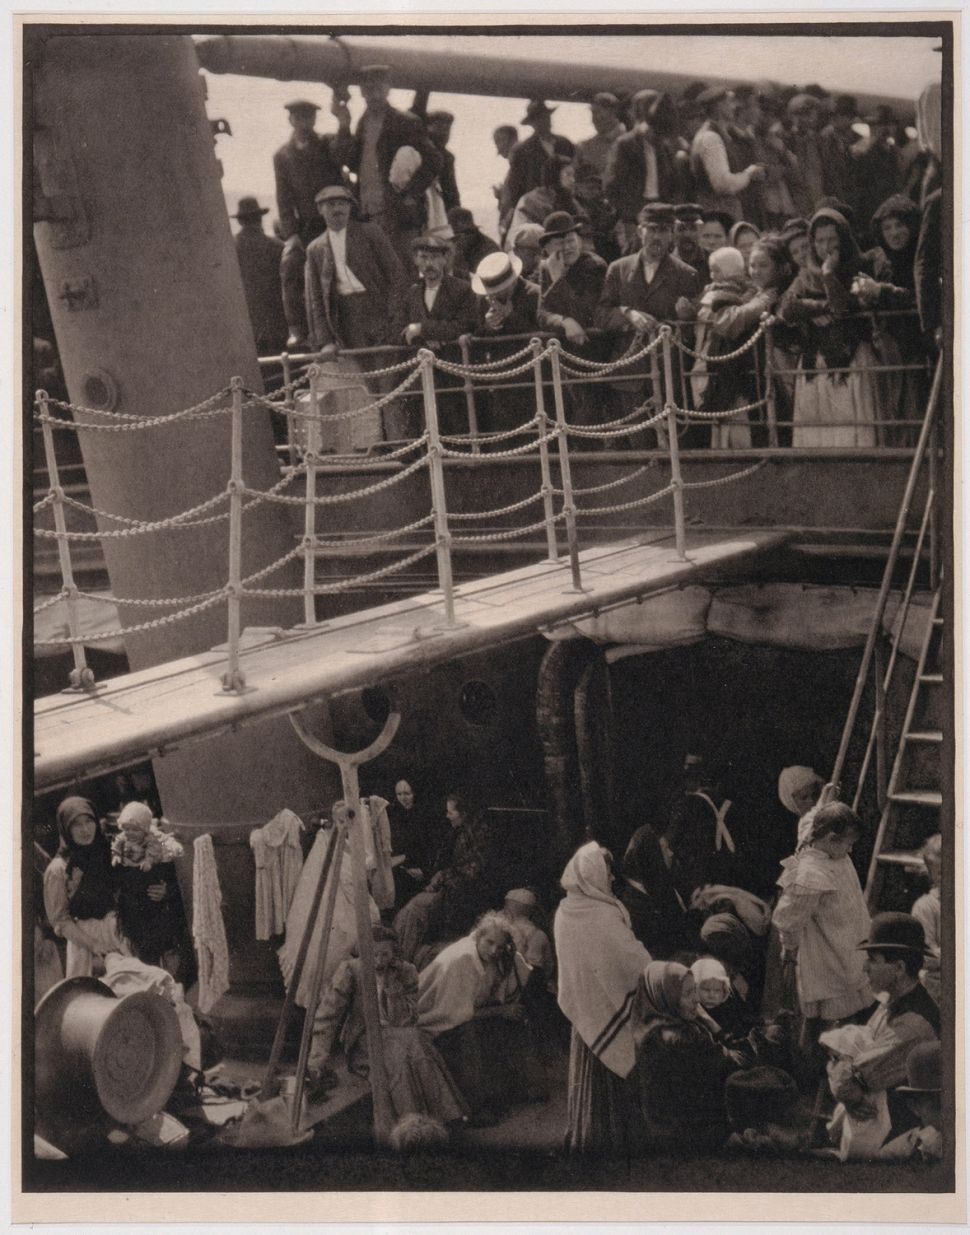 Who Were They? The Truth Behind Stieglitz's Iconic Photograph 'The Steerage' Revealed